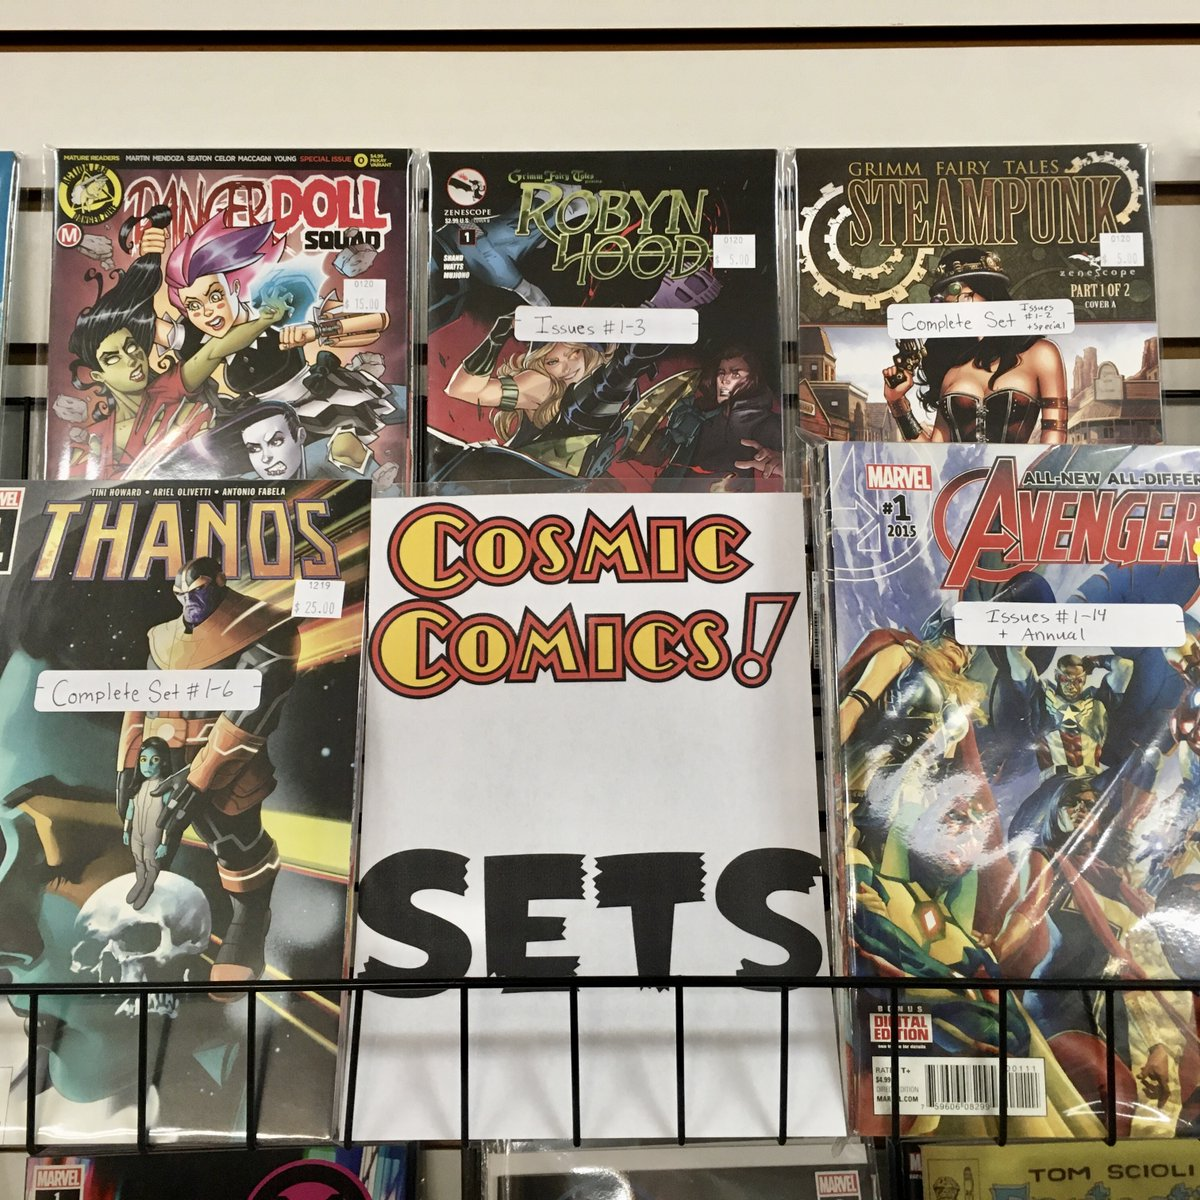 New Comic Sets are being added daily. Awesome stories at a budget friendly price.  #Sets are located on the #CosmicBackWall and on the #BackIssues table. ... #ComicSets #Marvel #DC #Indy #igcomicfamily #getyourfixpic.twitter.com/n8eRO9jisN